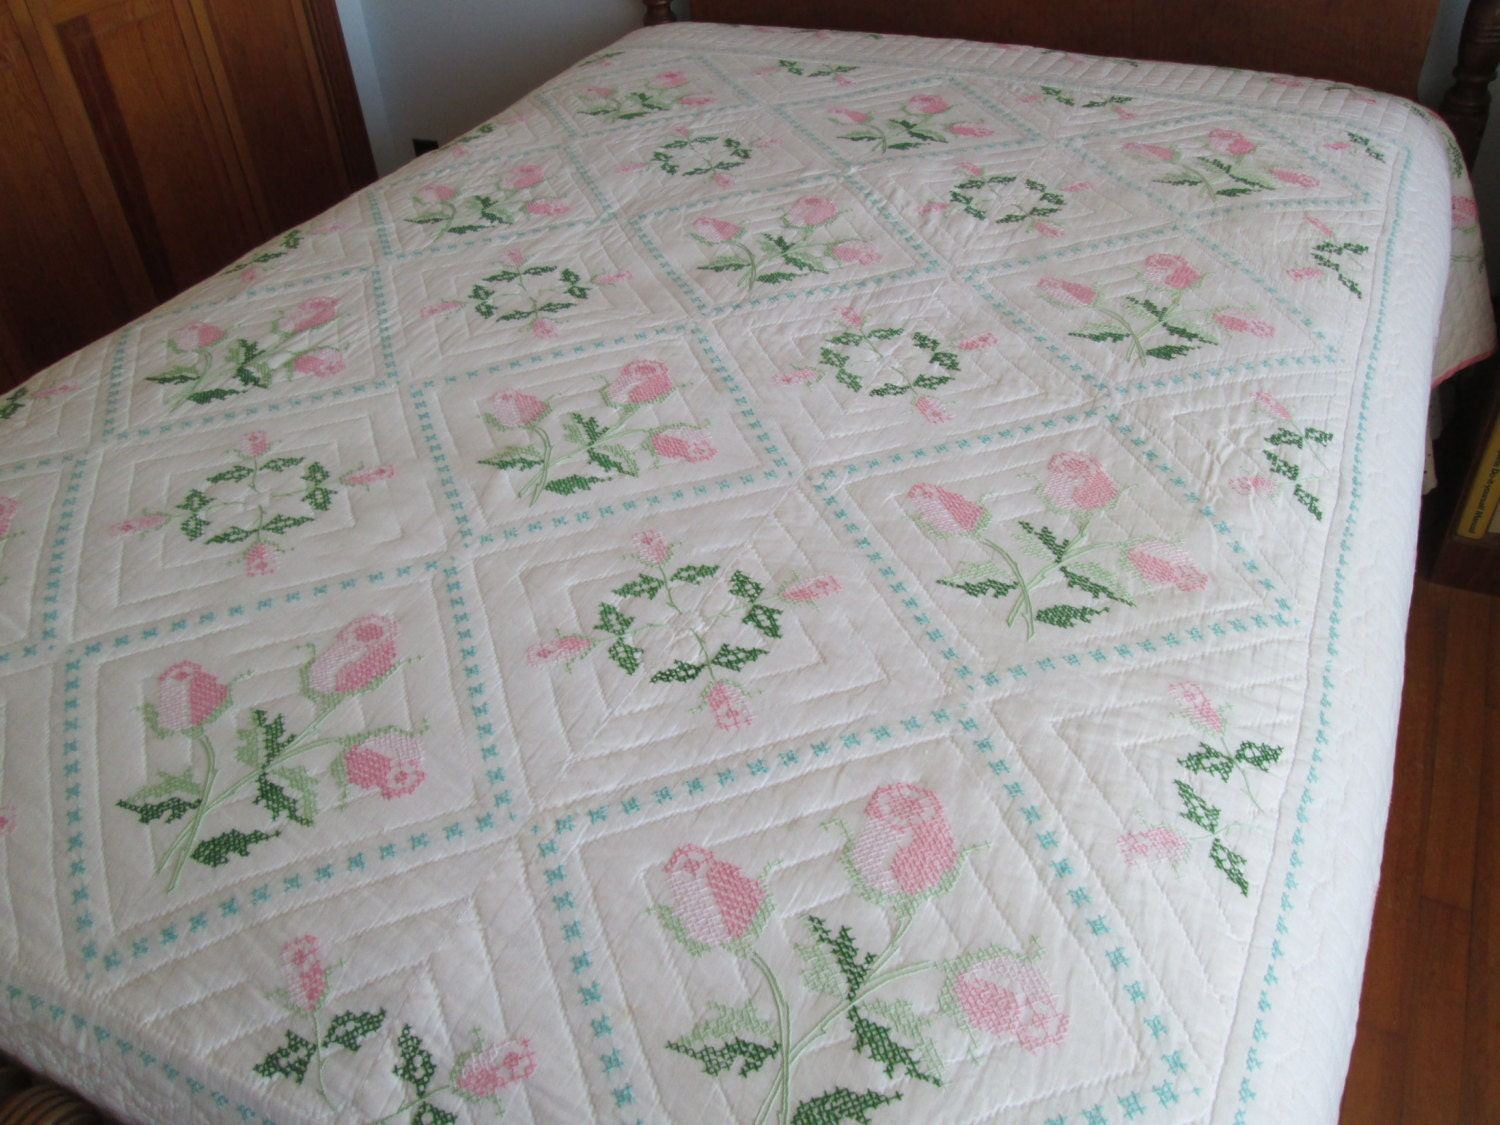 Full sized hand embroidered pink roses quilt